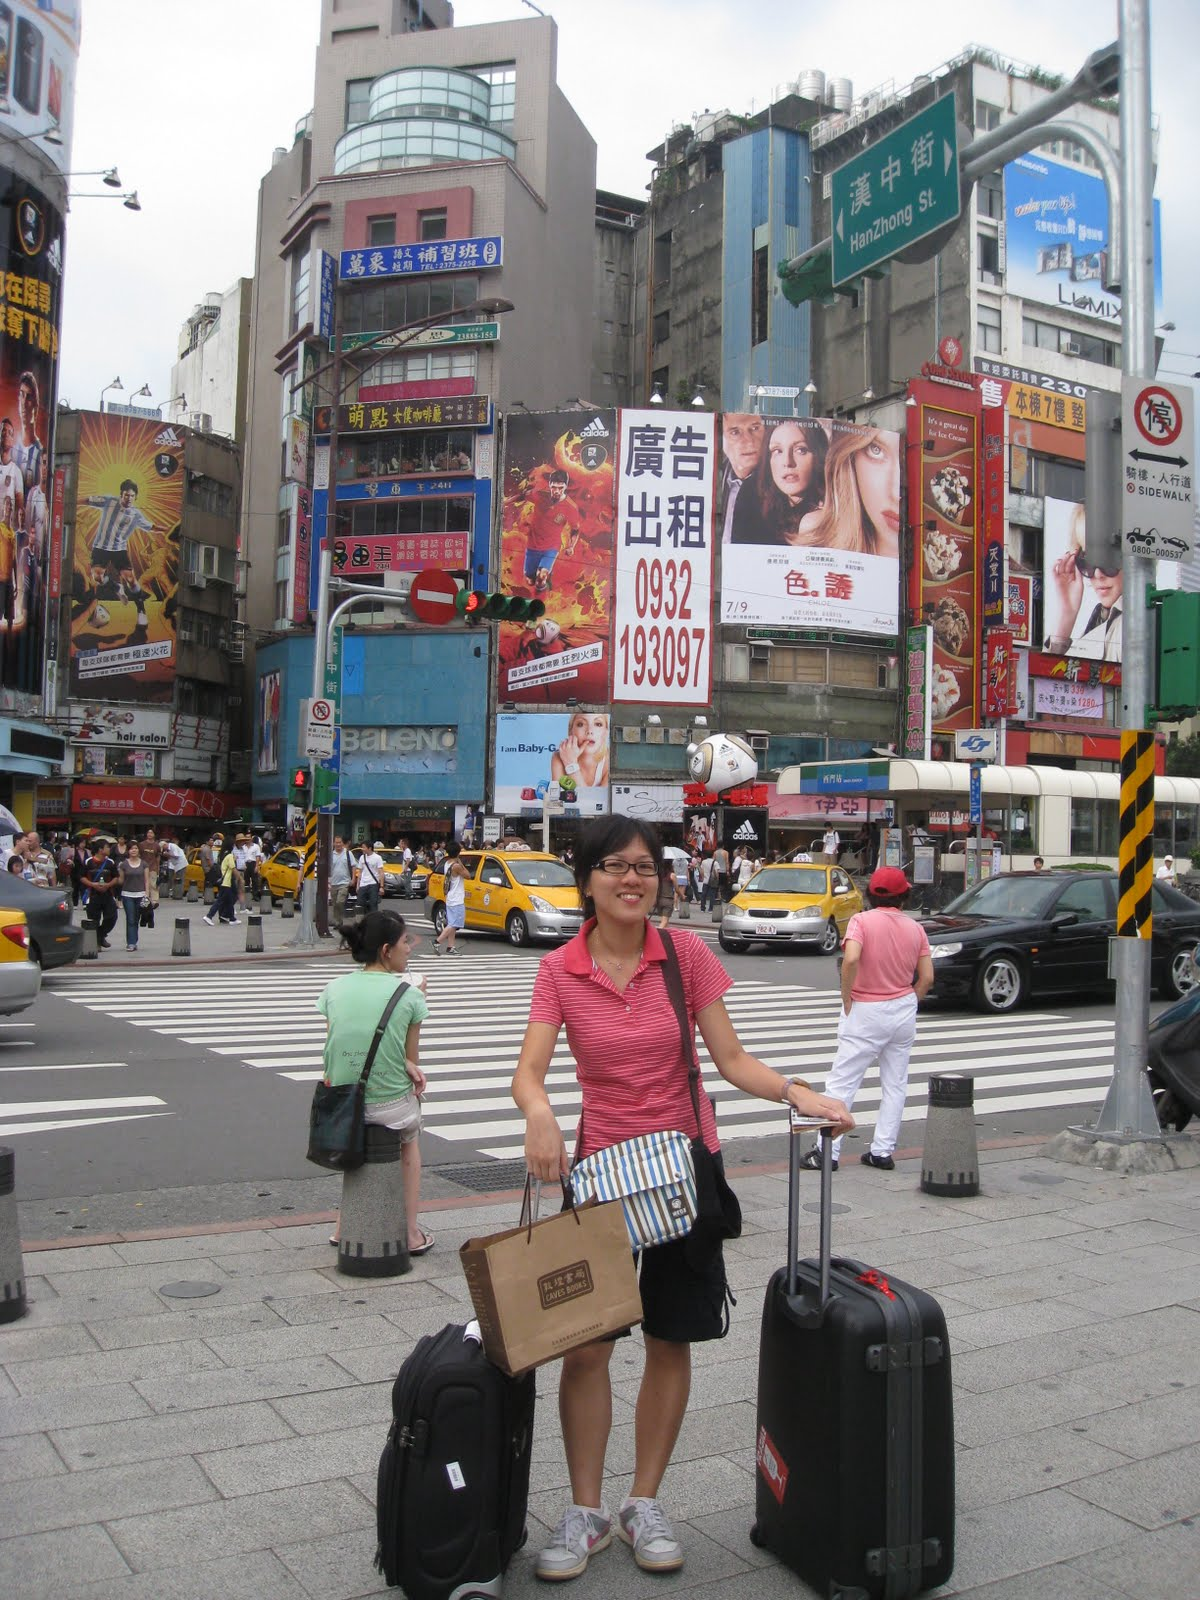 G's Travelogy (Uncut. Uncensored. Unrated): Day 6 (19/6): Taipei (Ximending. Wu Fen Pu)